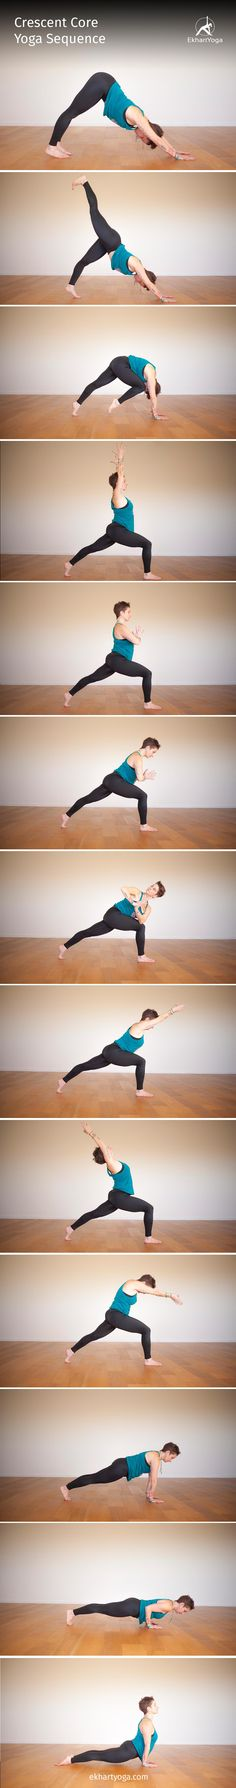 A Crescent Core Yoga Sequence to get your heart rate going and your body grounded.. give it a try!